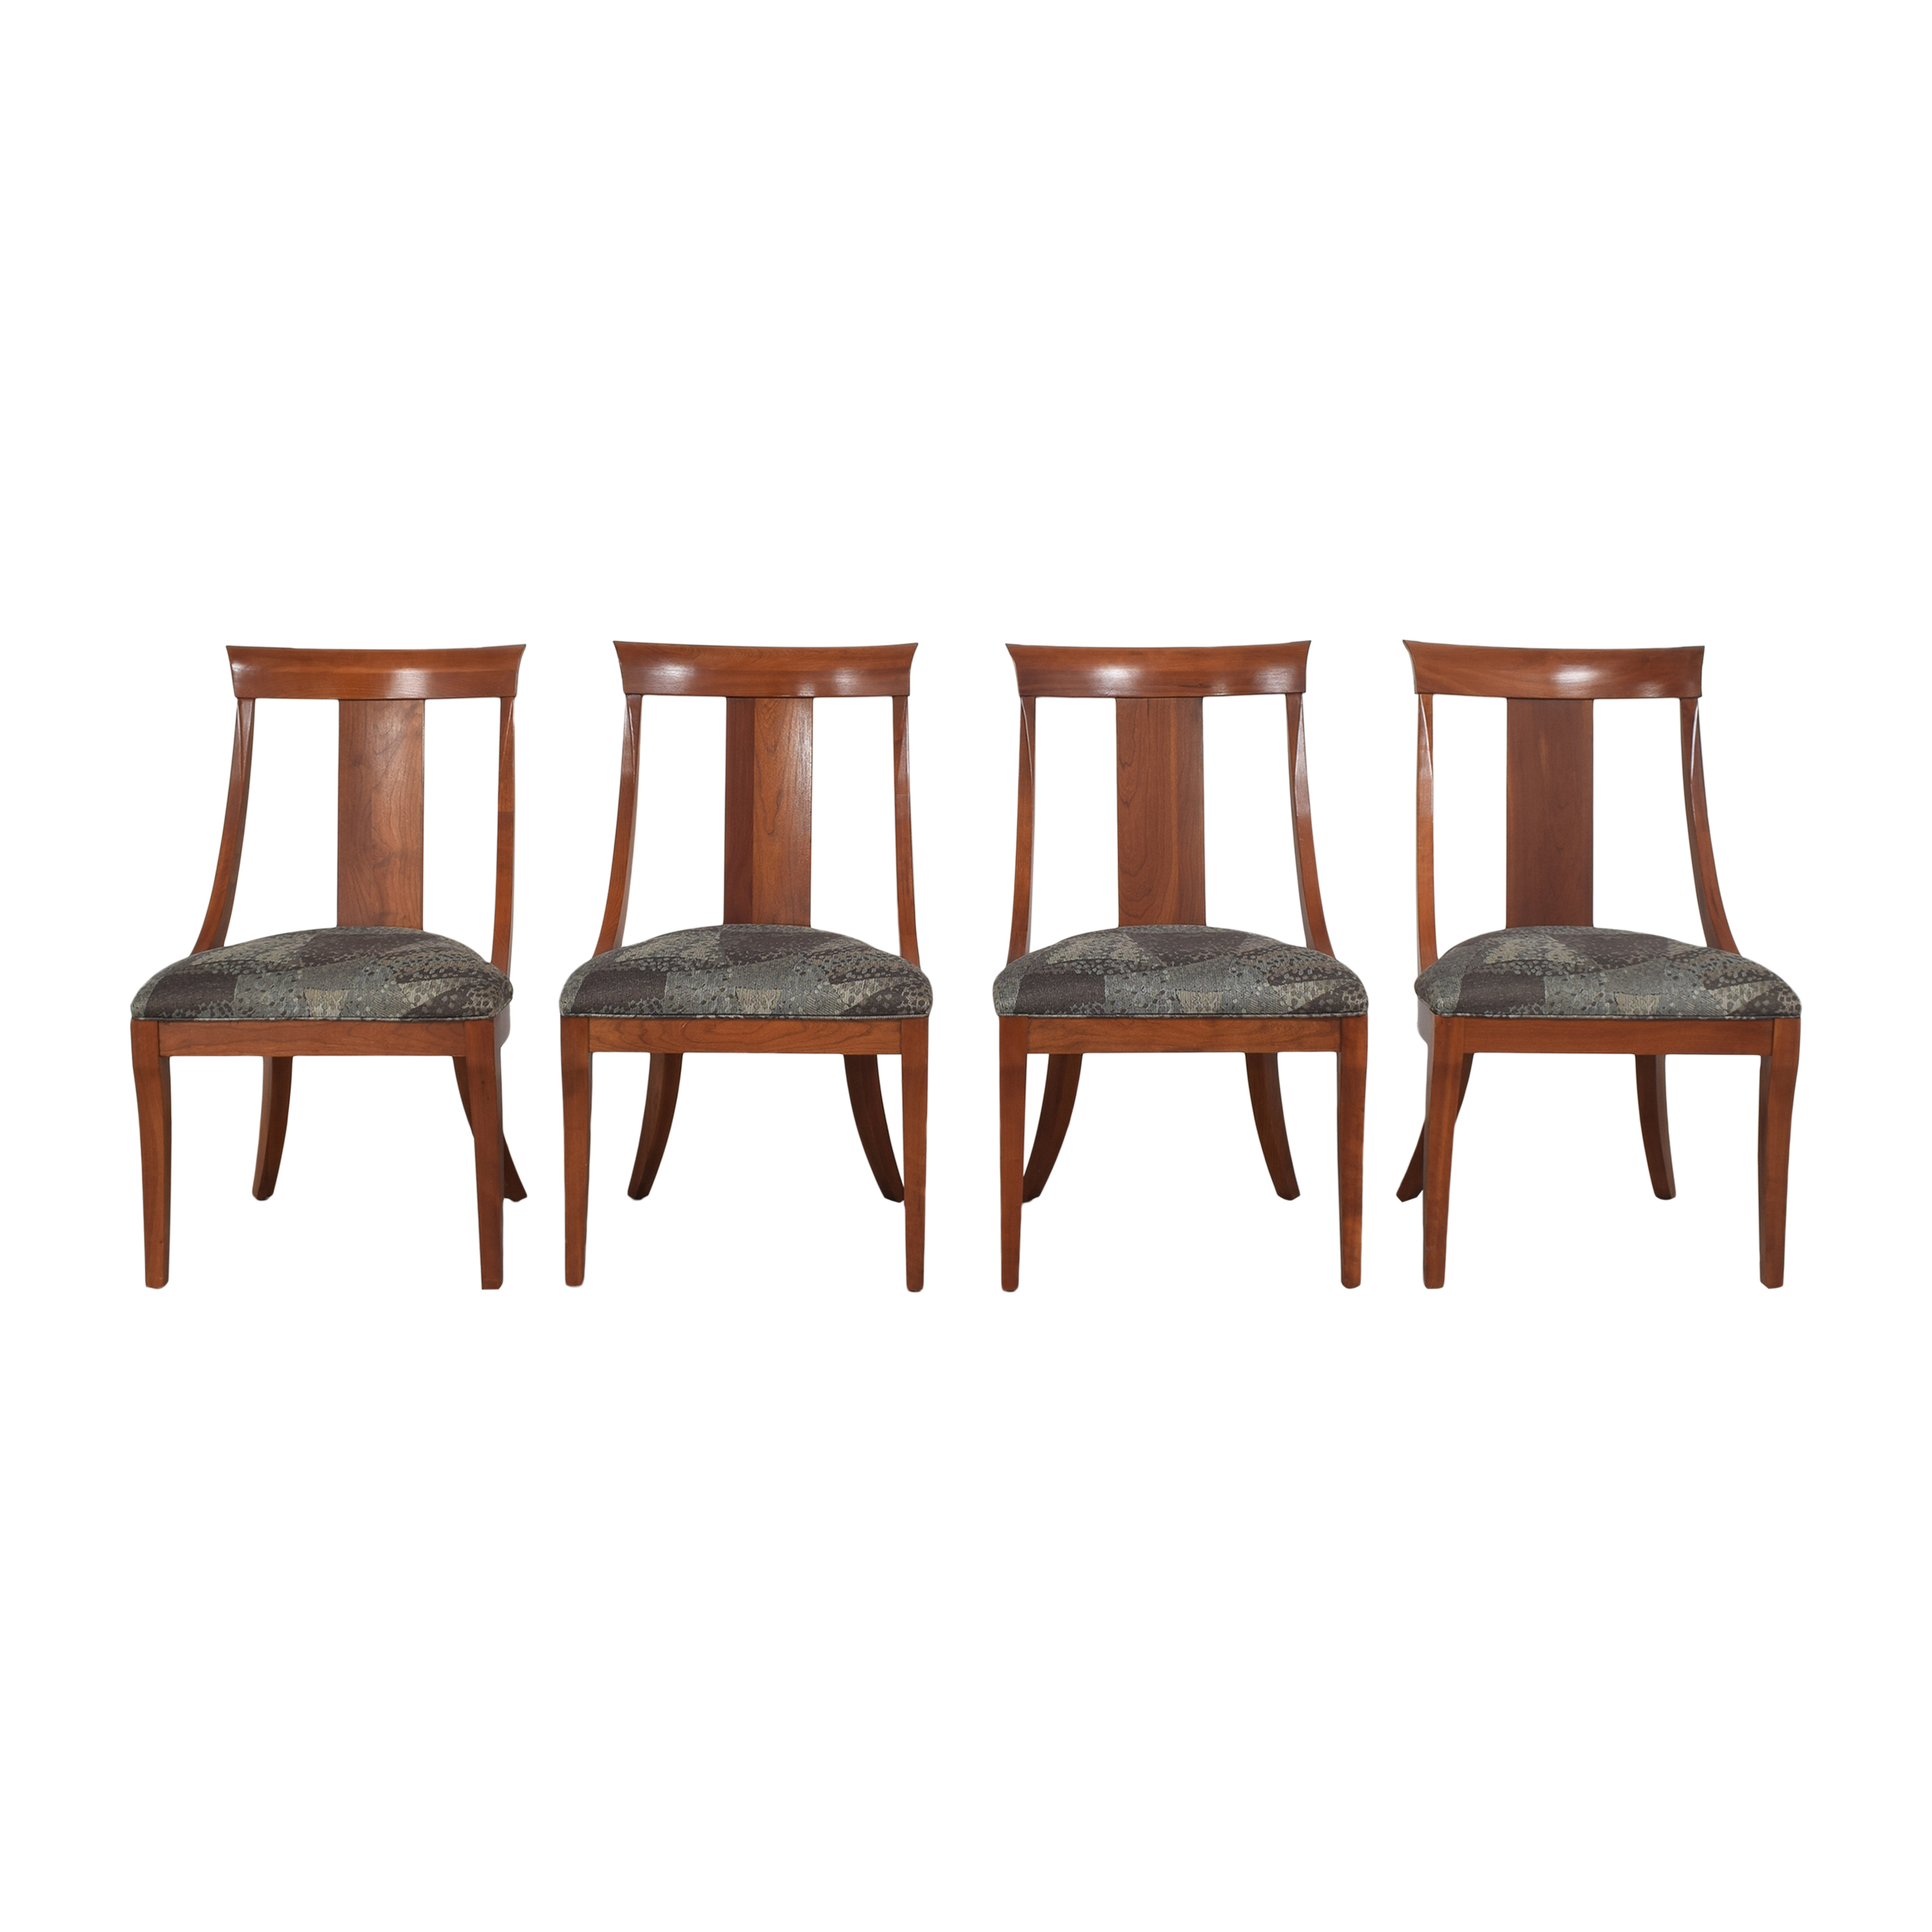 Ethan Allen Ethan Allen Medallion Dining Chairs used